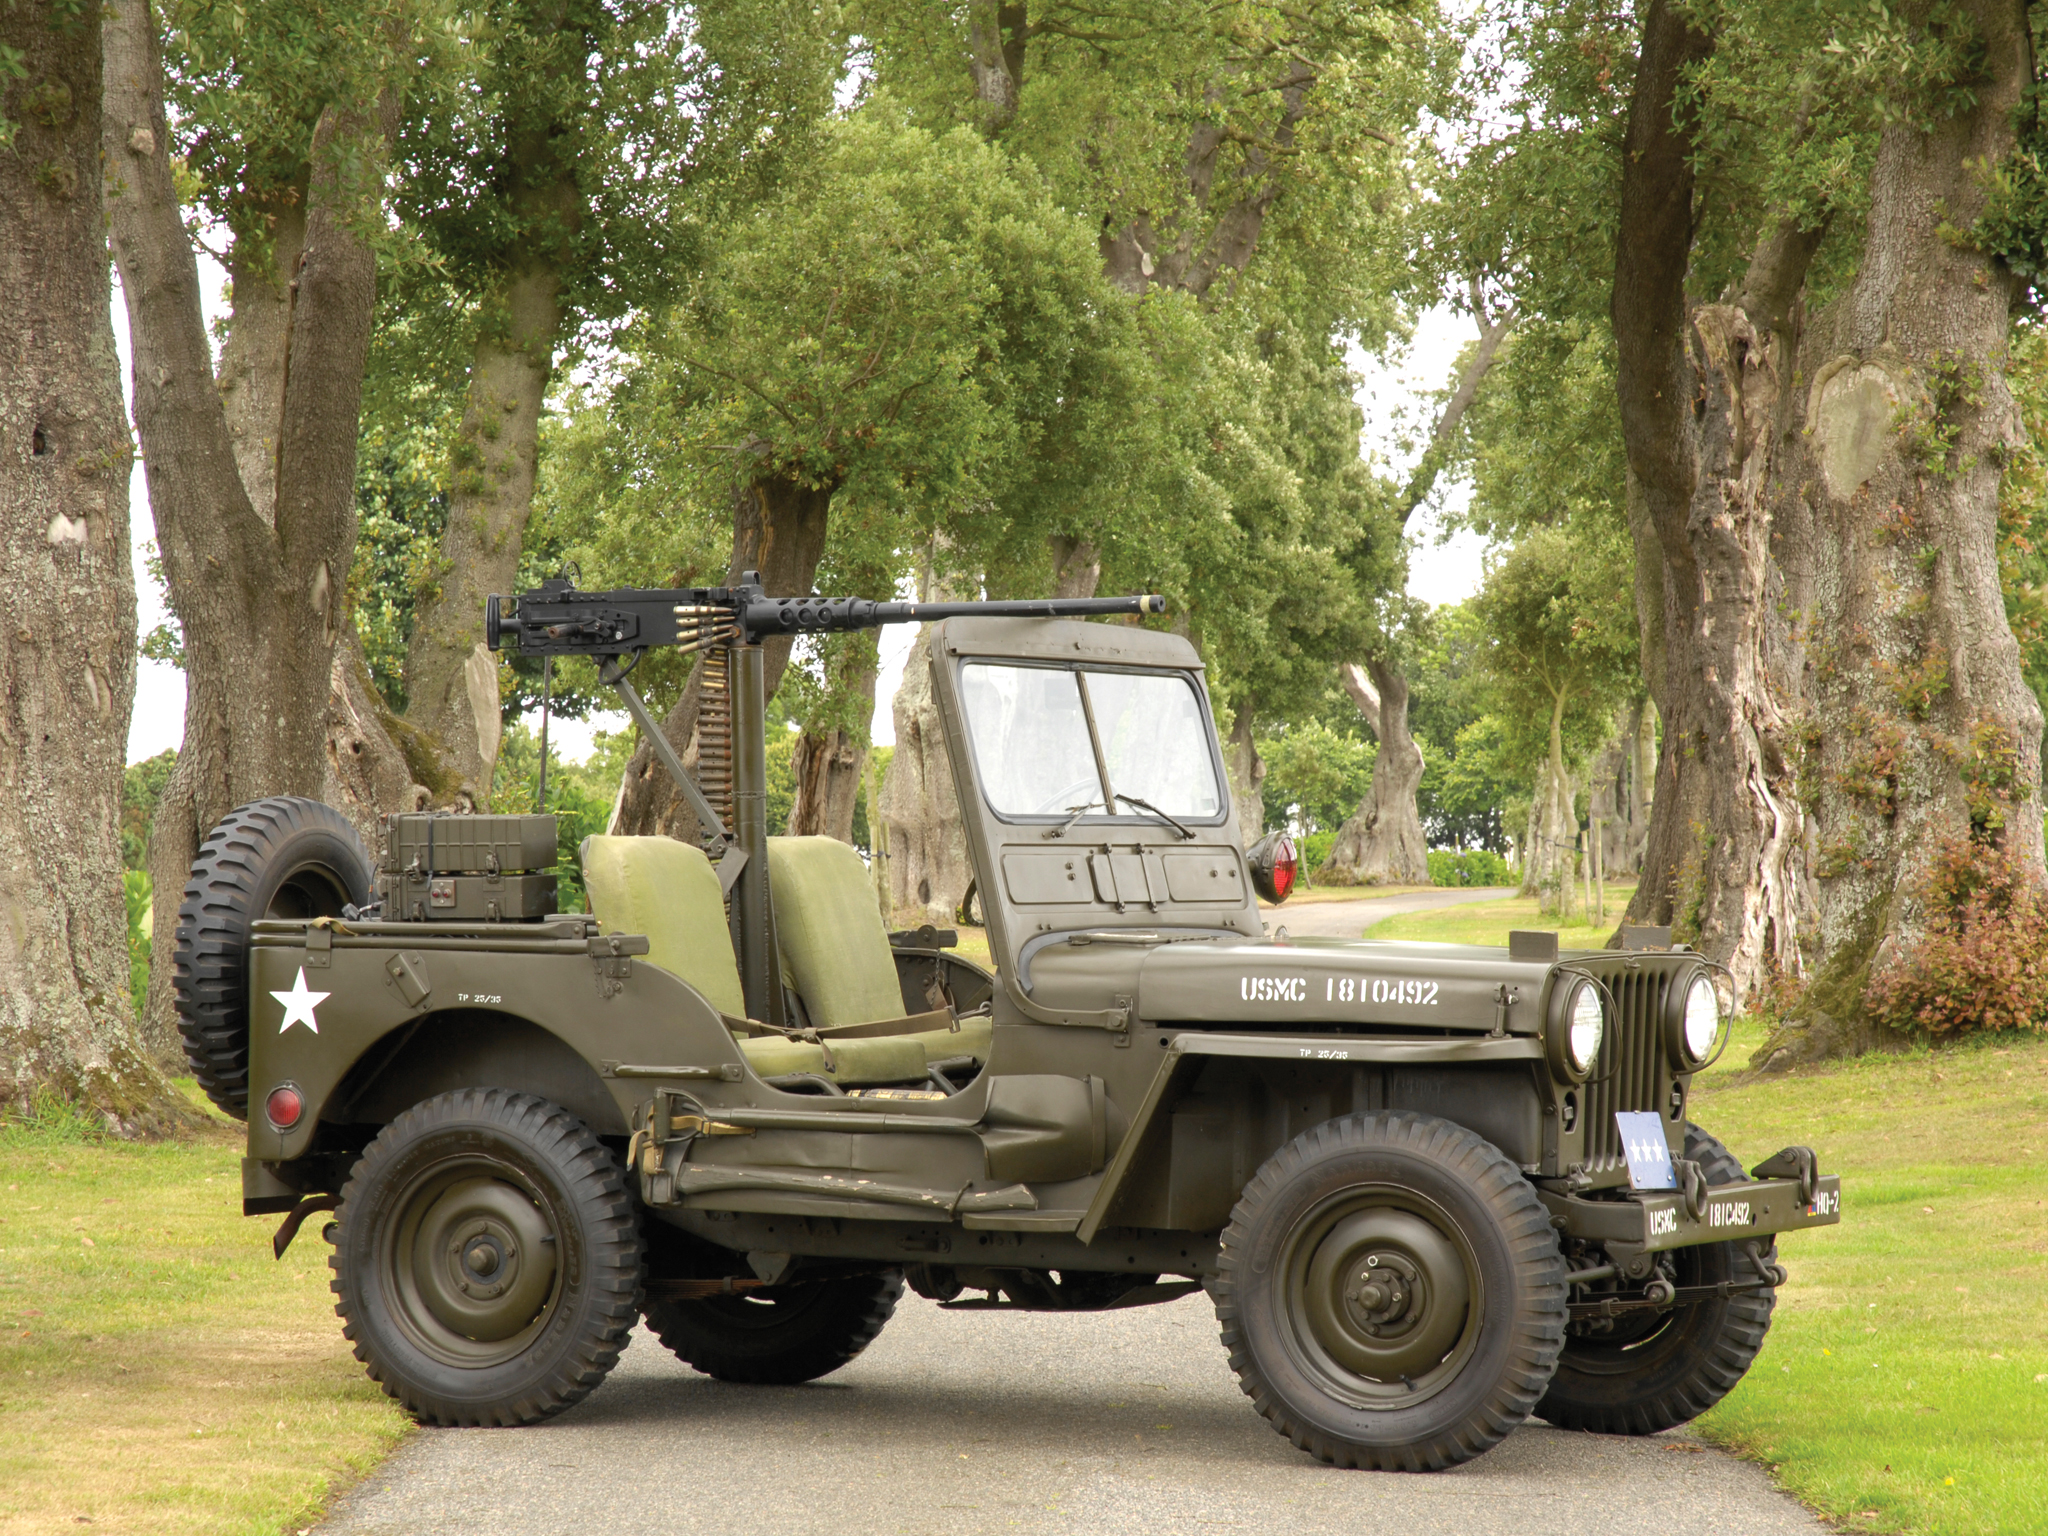 M38 Jeep Wiring Diagram Schematics Cj3b Willys Army Schematic Another Blog About U2022 Circuit Breaker Box